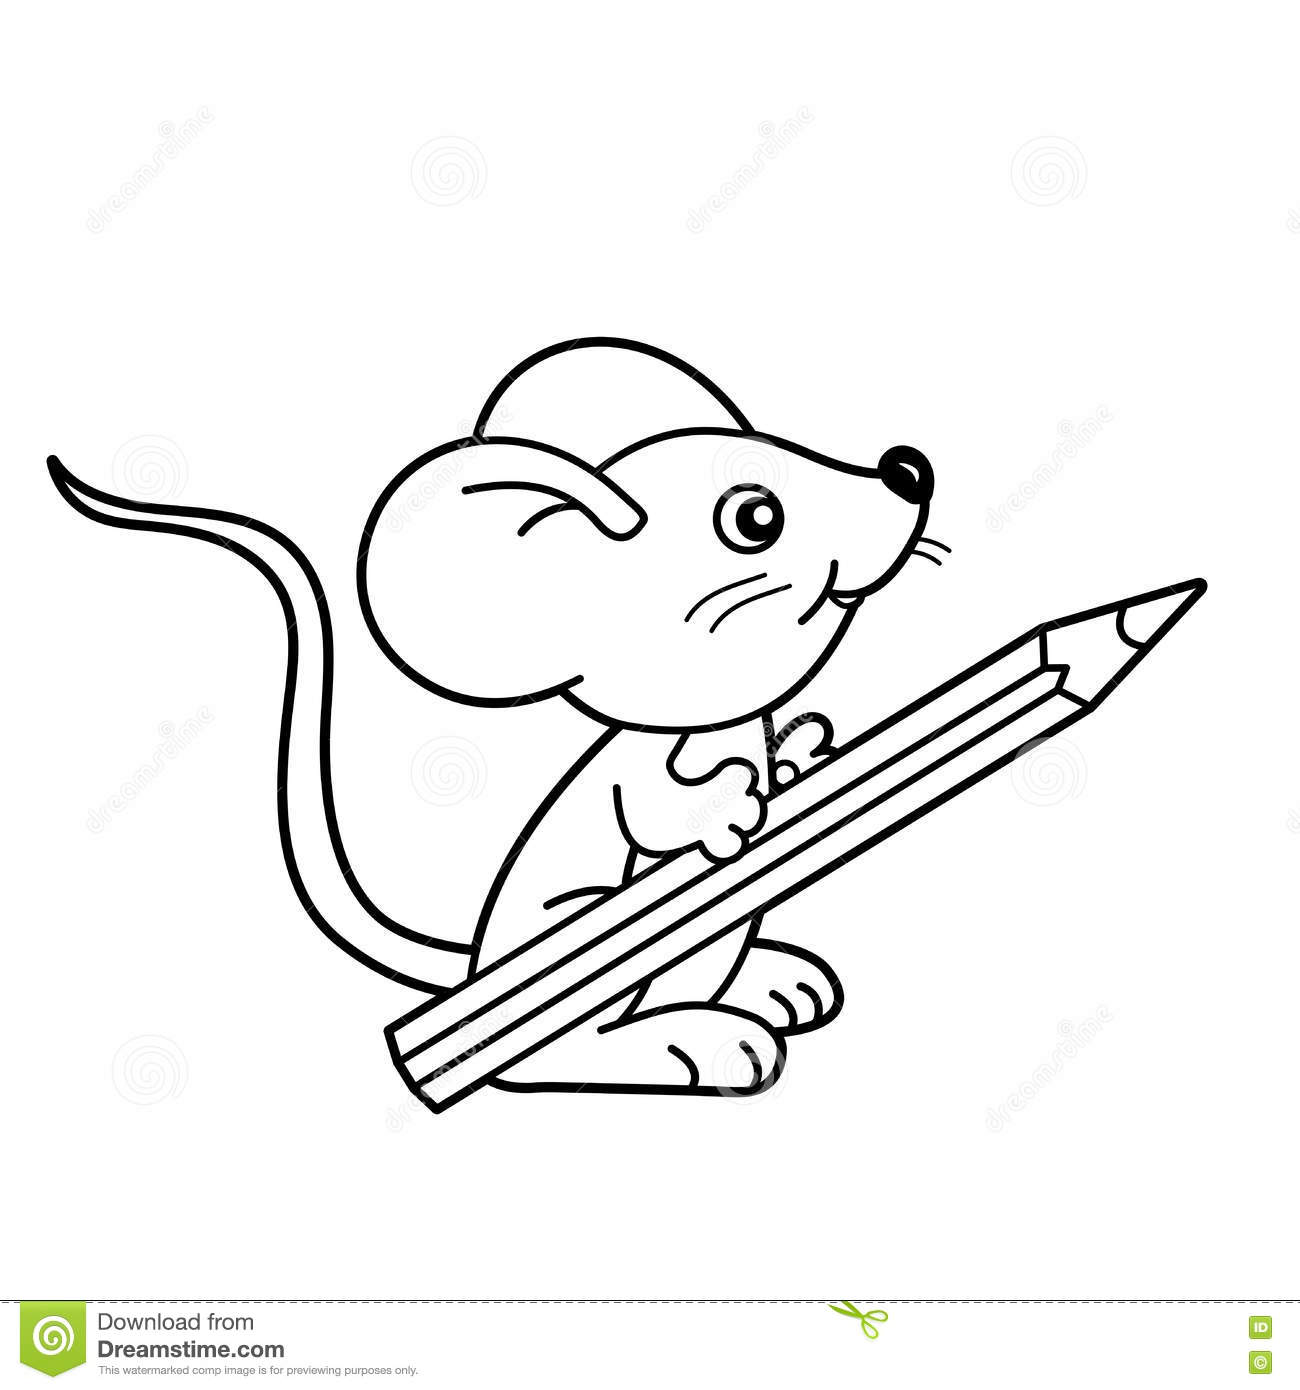 coloring page outline of cartoon little mouse with pencil coloring book for kids